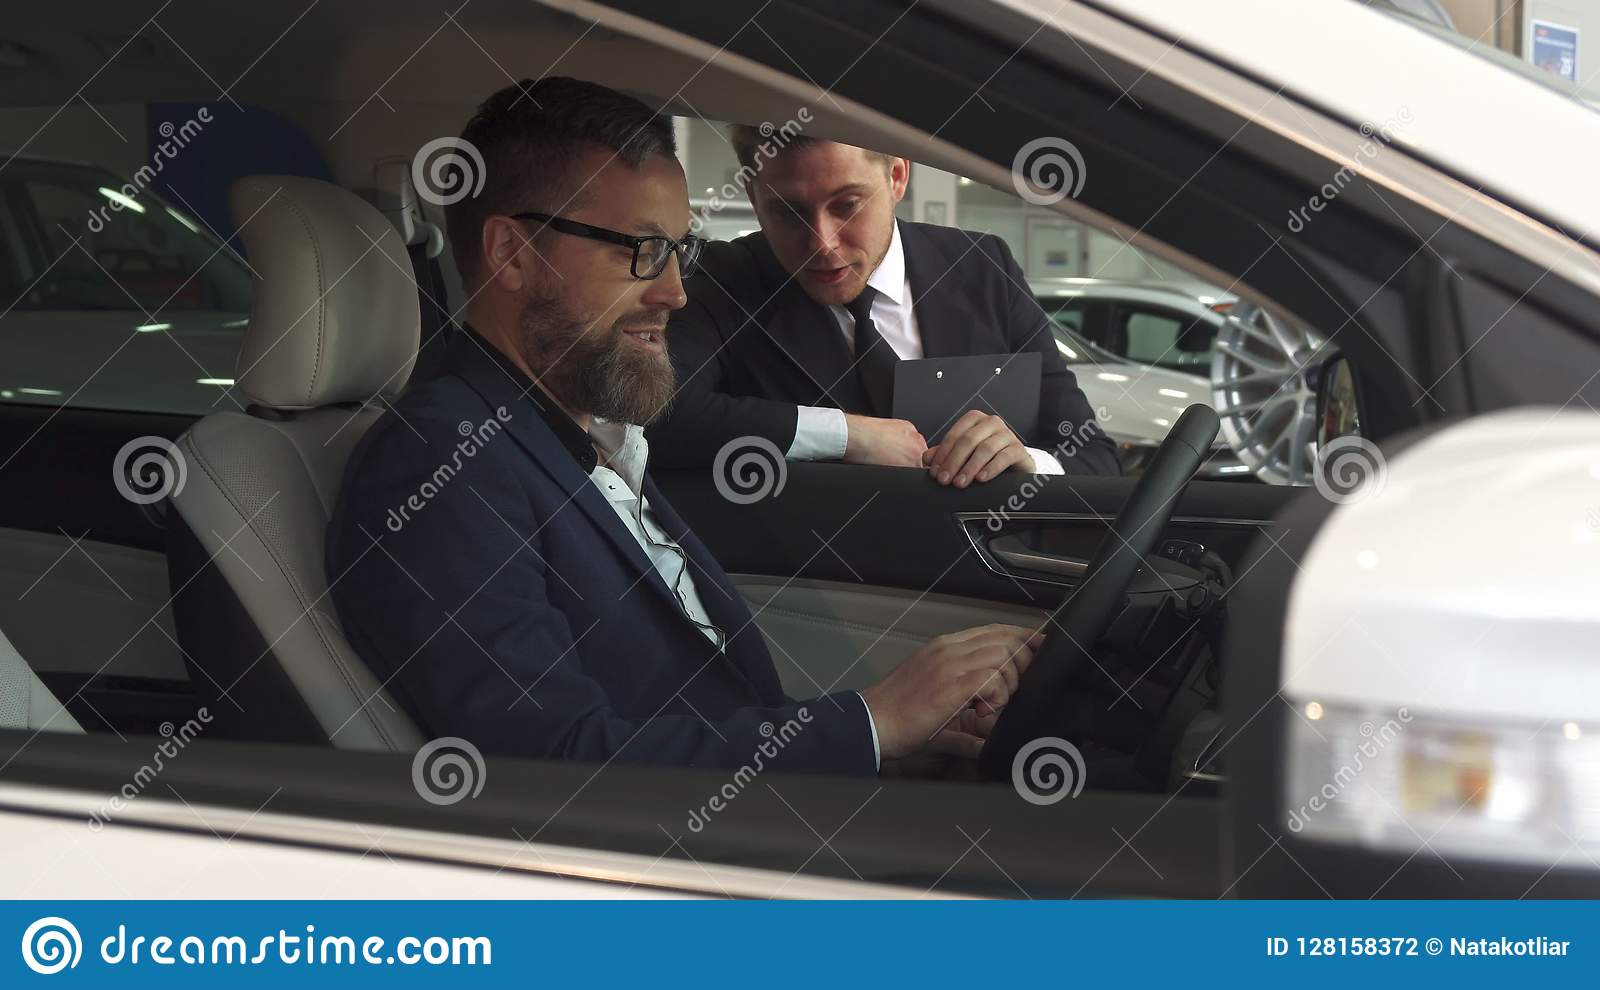 Sales manager comes to the car with customer inside it